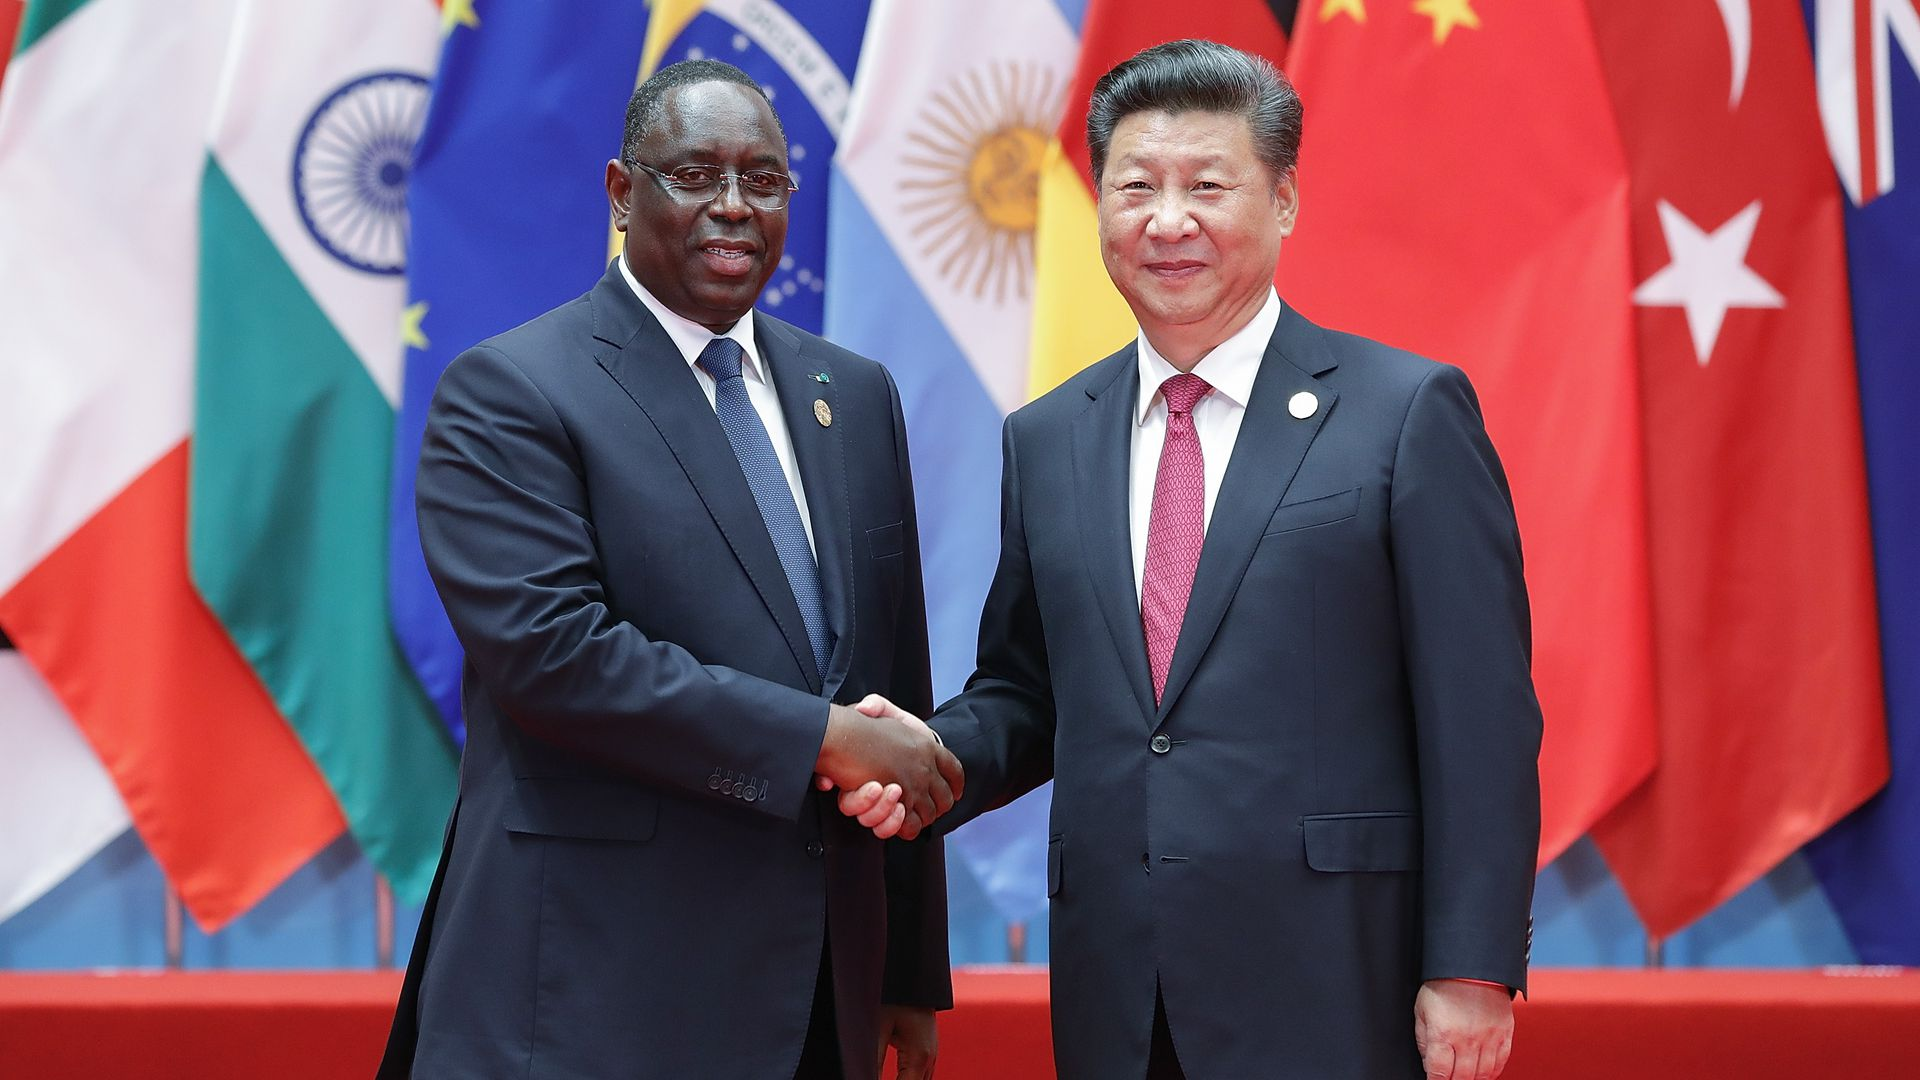 Chinese President Xi Jinping shakes hands with Senegalese President Macky Sall at the G20 Summit.